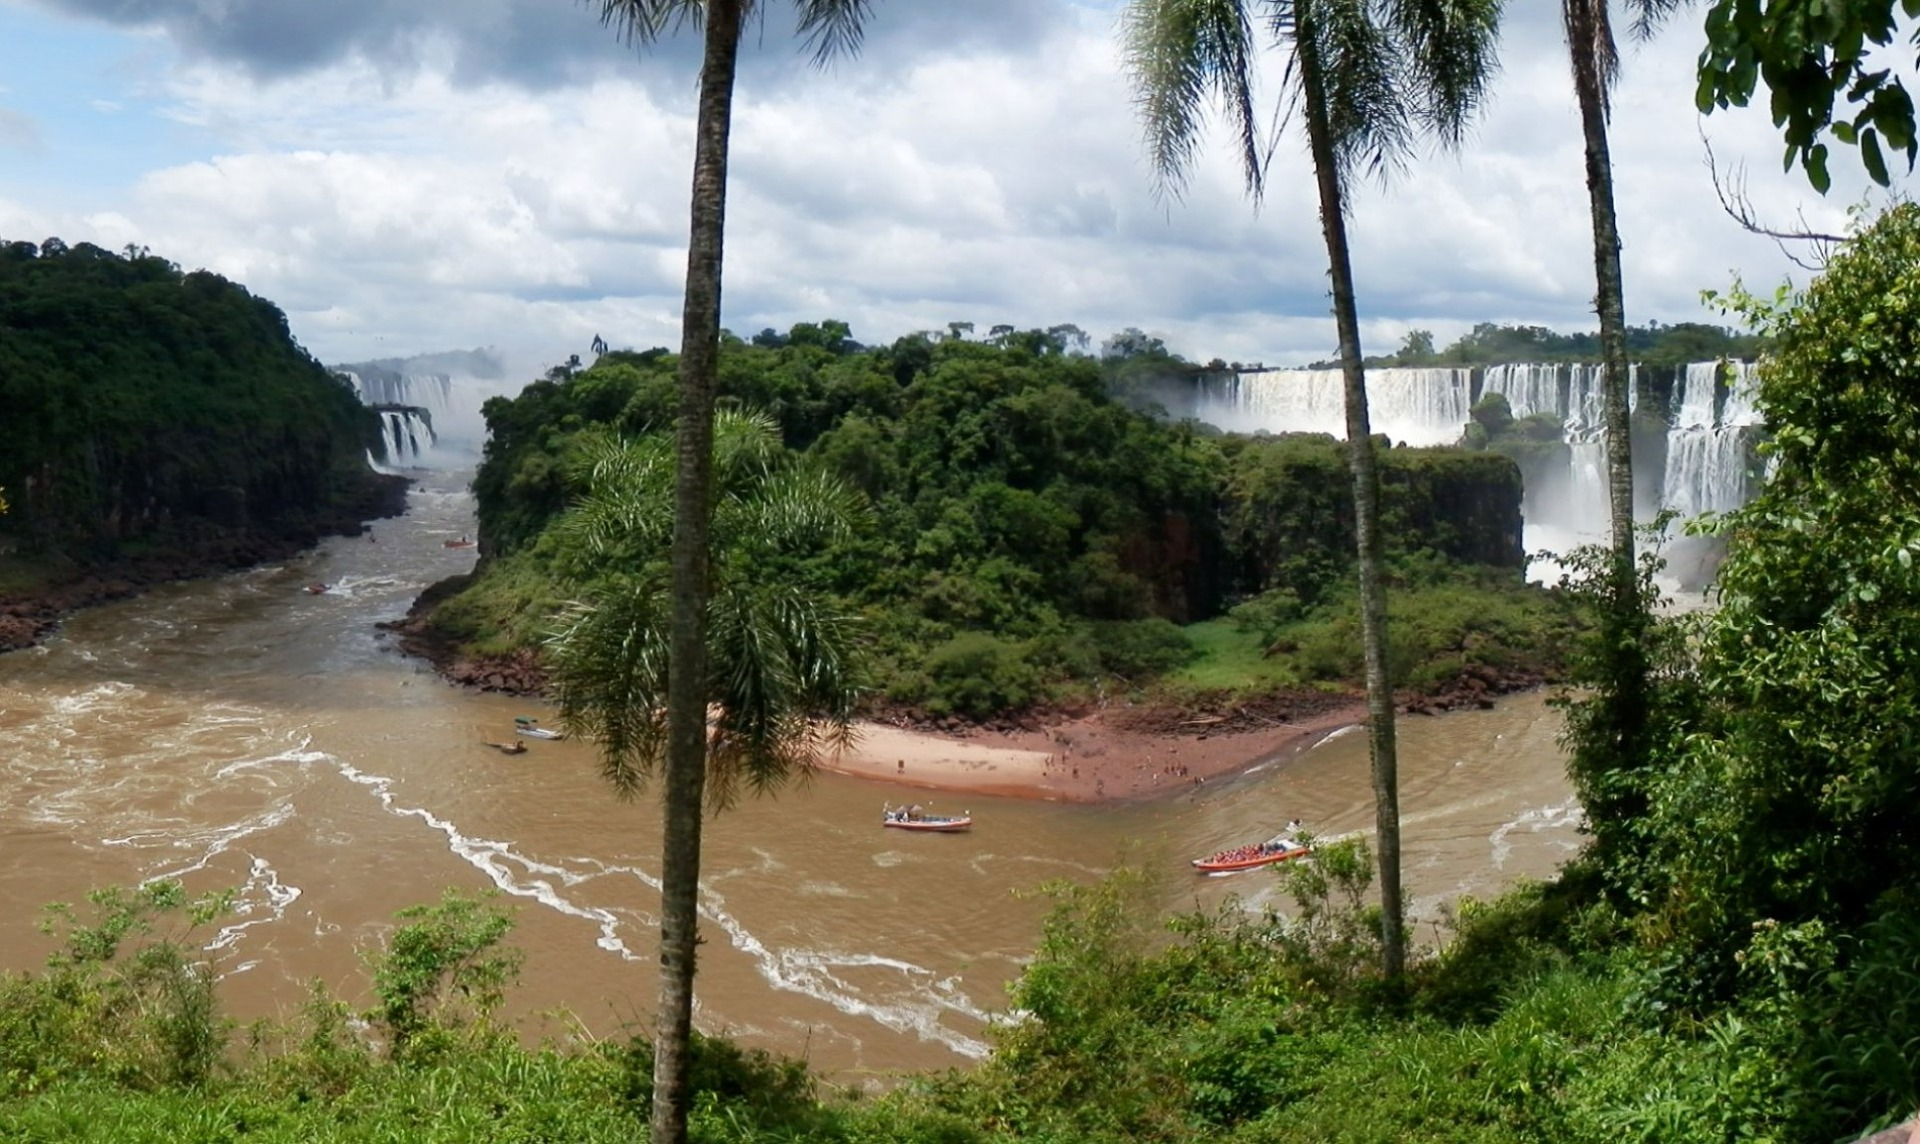 Panorama of Iguazu Falls in Argentina and Brazil